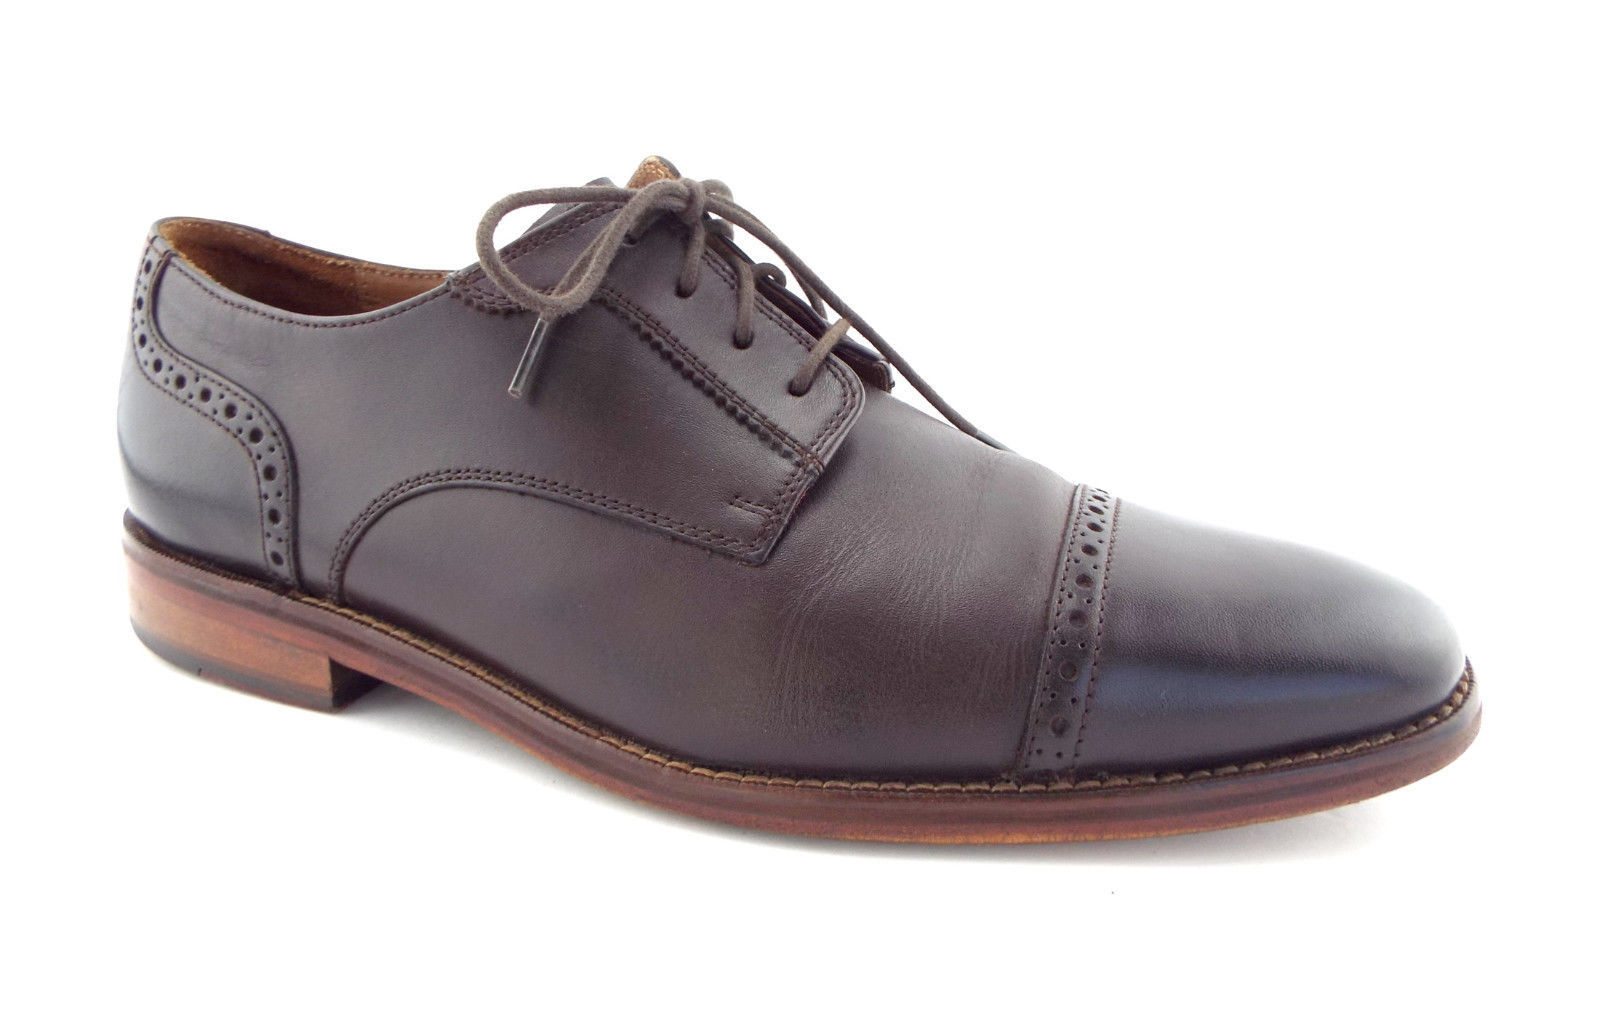 COLE HAAN Size 9.5 Brown Leather Cap Toe Oxfords Shoes 9 1/2 - $74.00